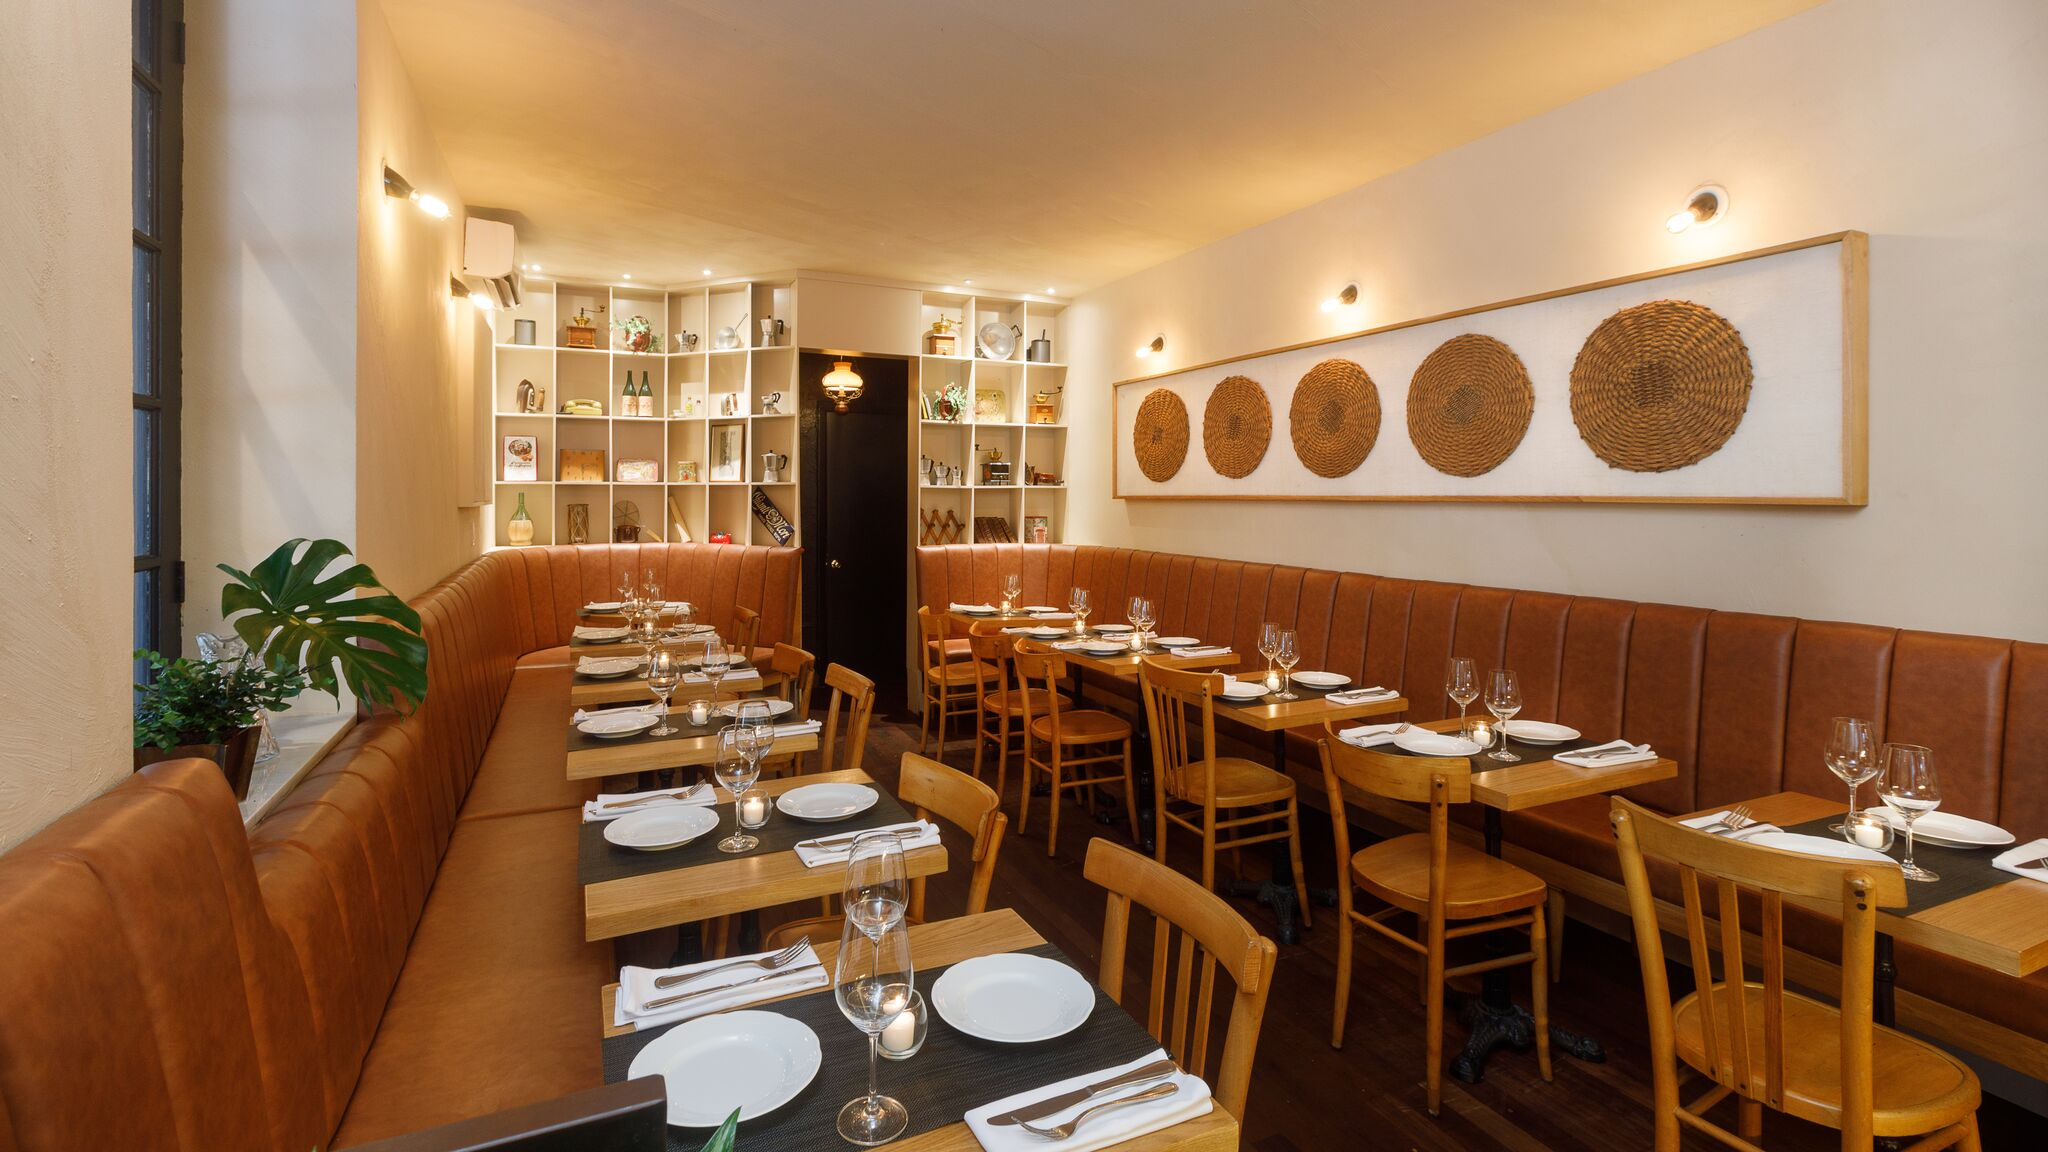 Indoor view of Tarallucci e Vino - East Village dining room.